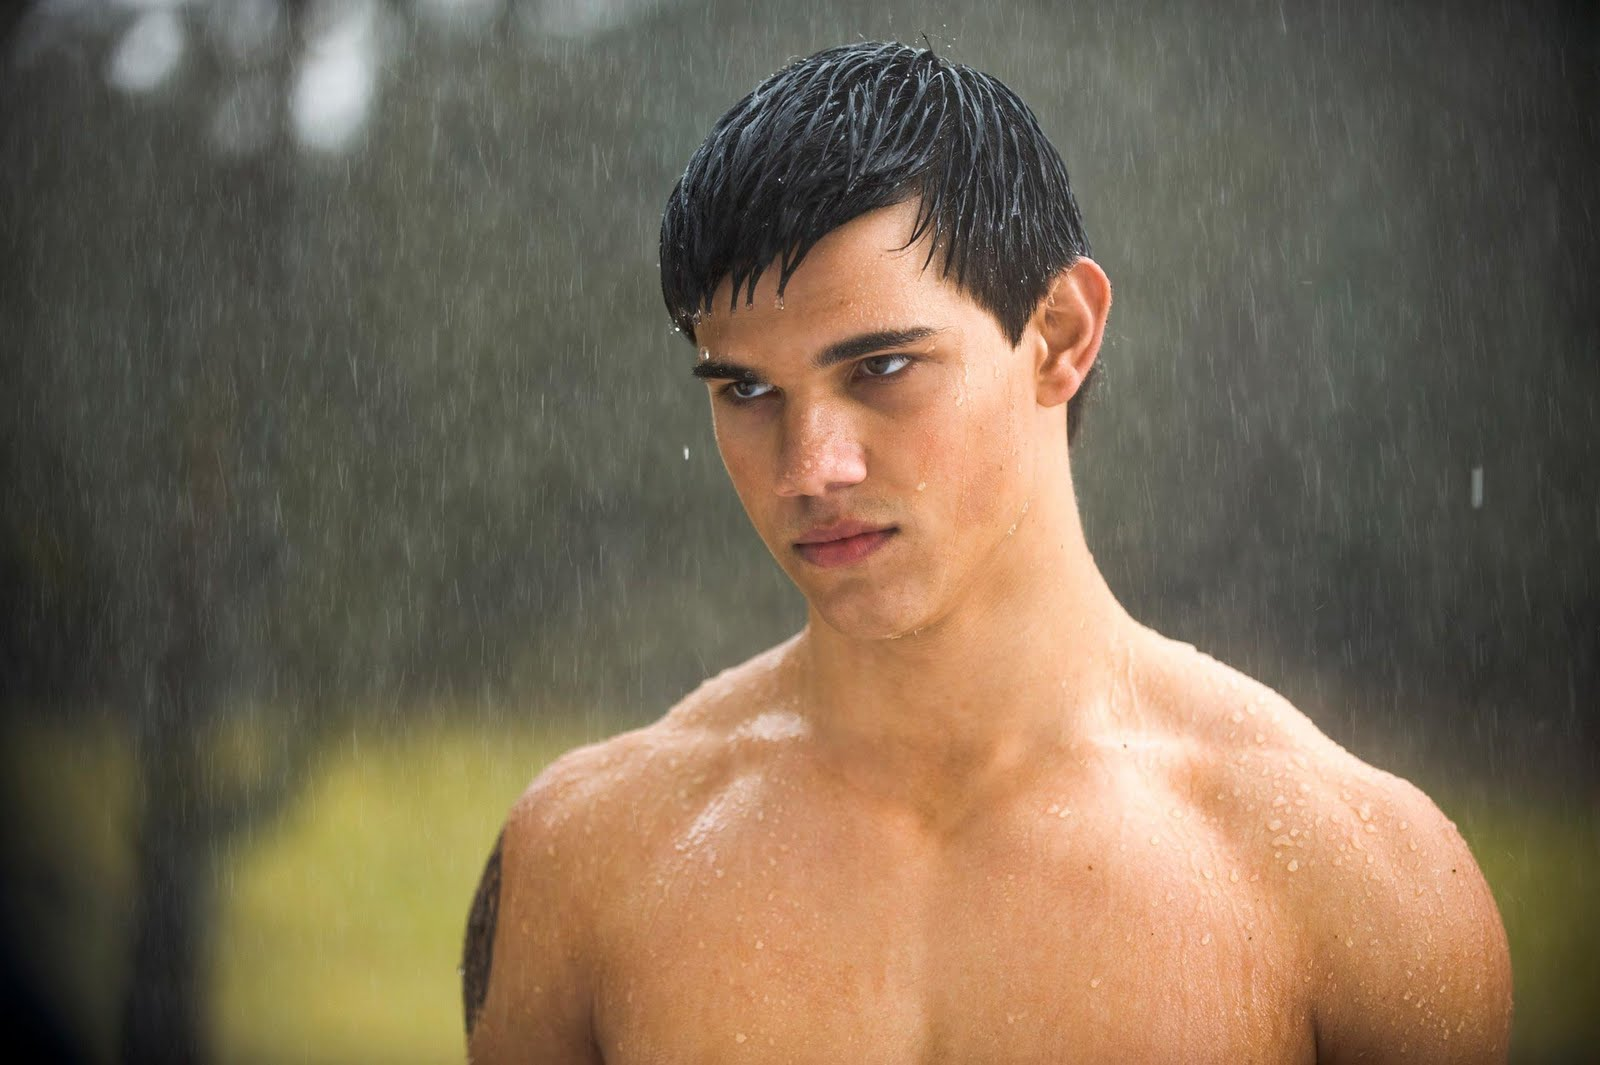 http://1.bp.blogspot.com/-lhmJ-CWanHo/TnysYMK-ObI/AAAAAAAAJTc/1t10waaFKUI/s1600/taylor-lautner-workout-new-moon-movie.jpg